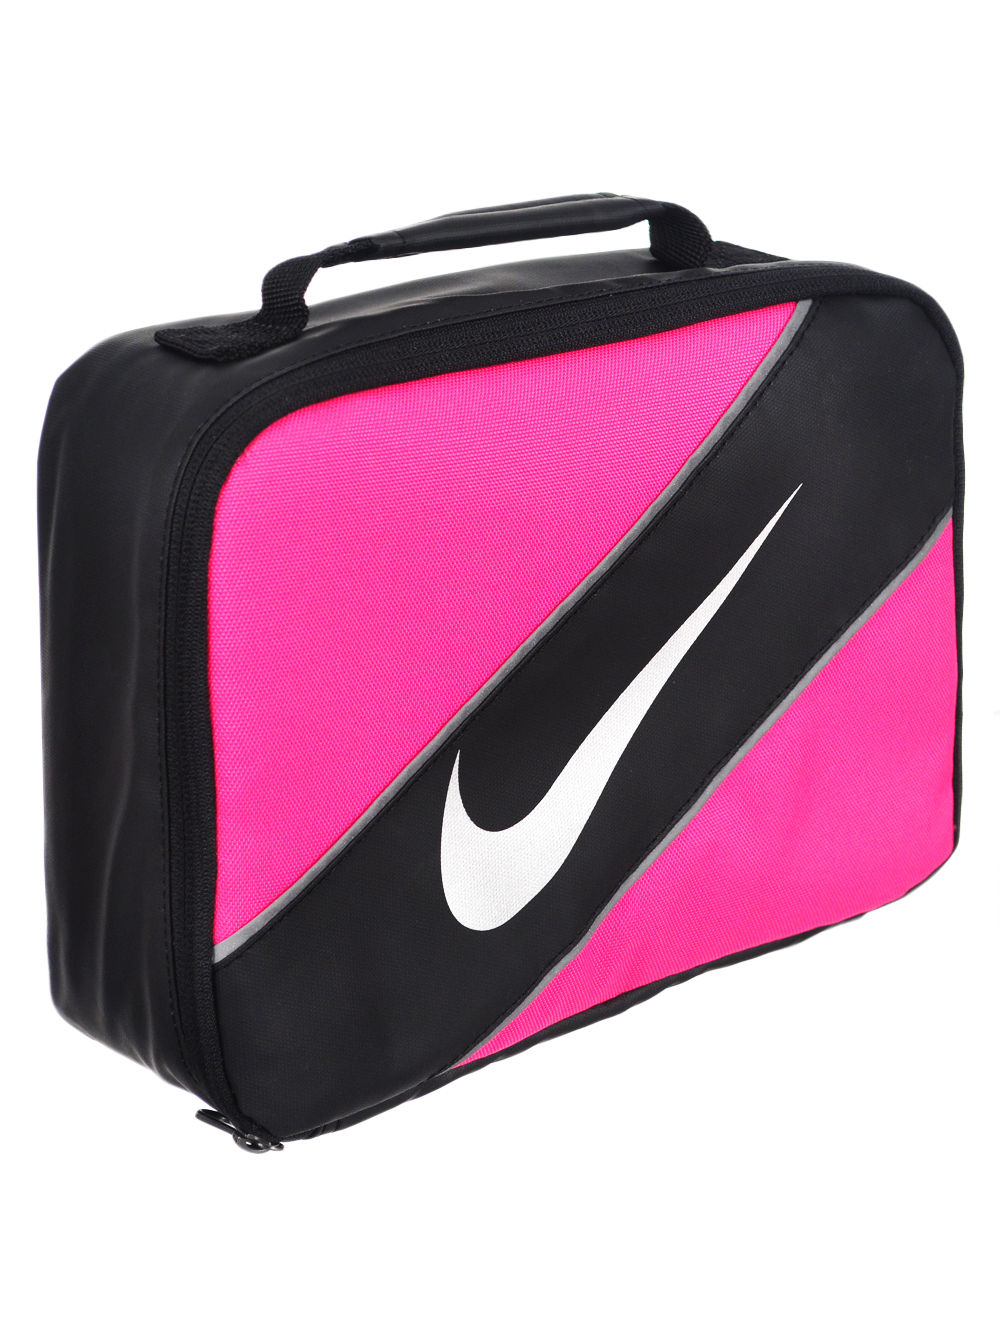 Hyper Pink Lunch Boxes